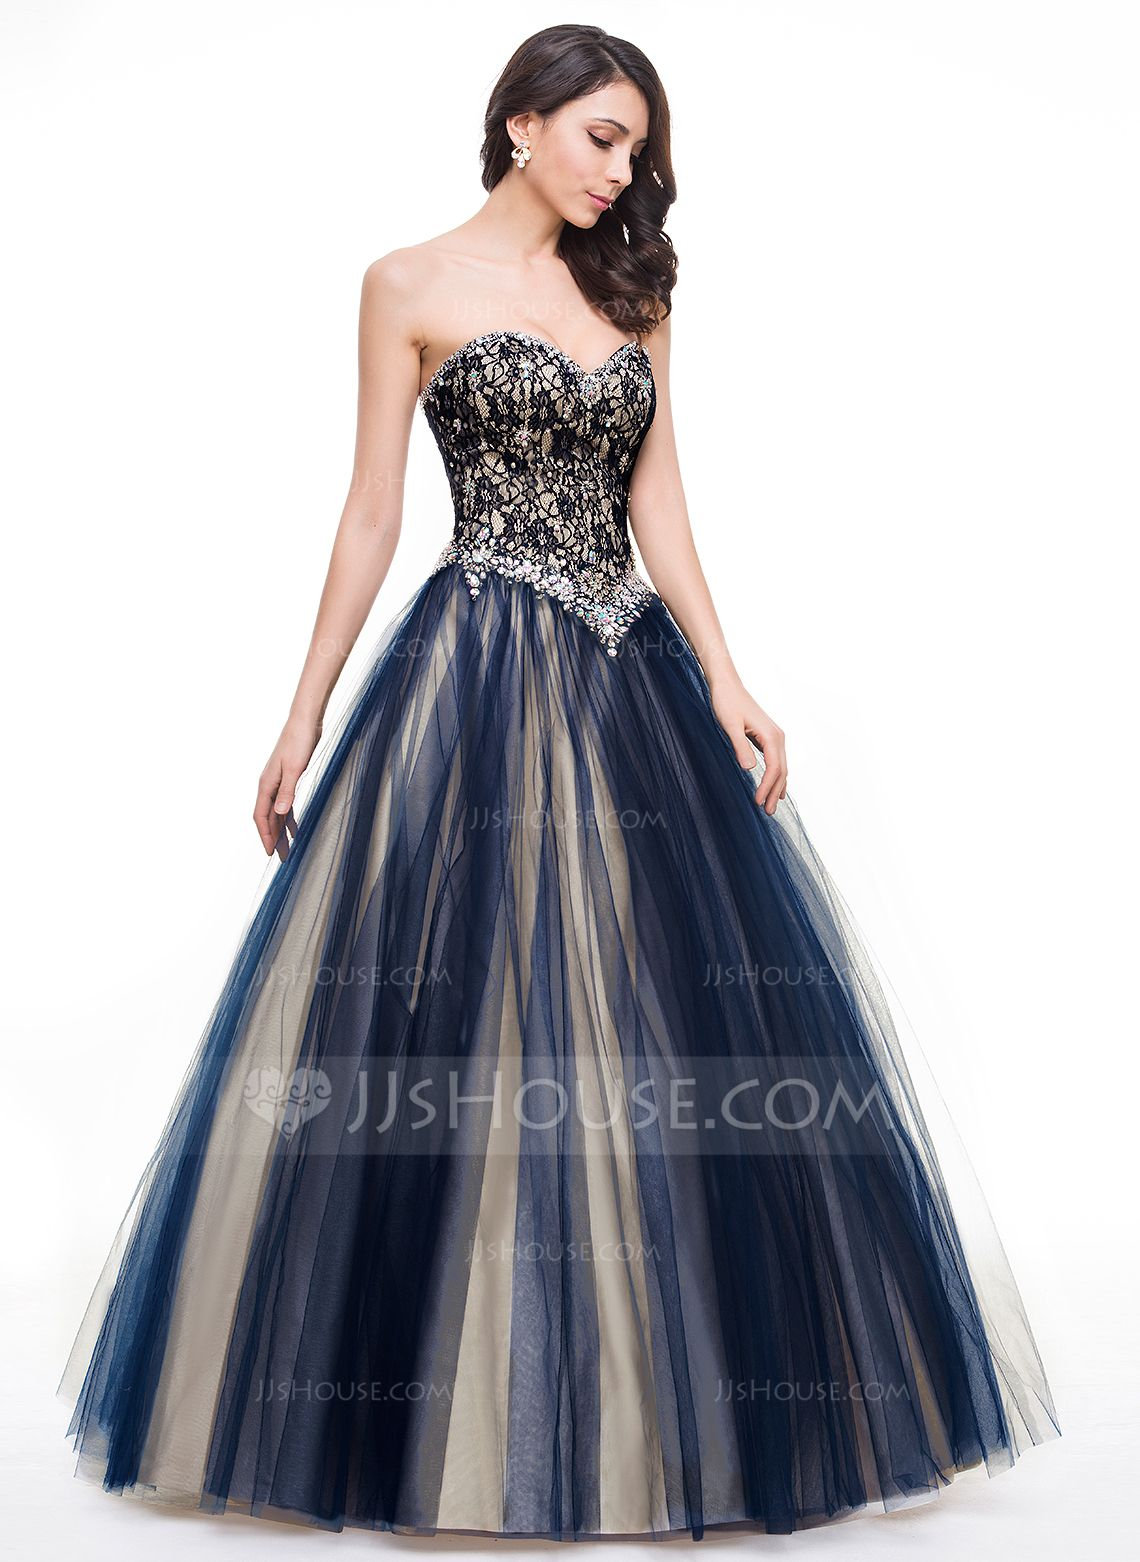 Ballgown sweetheart floorlength tulle lace prom dresses with